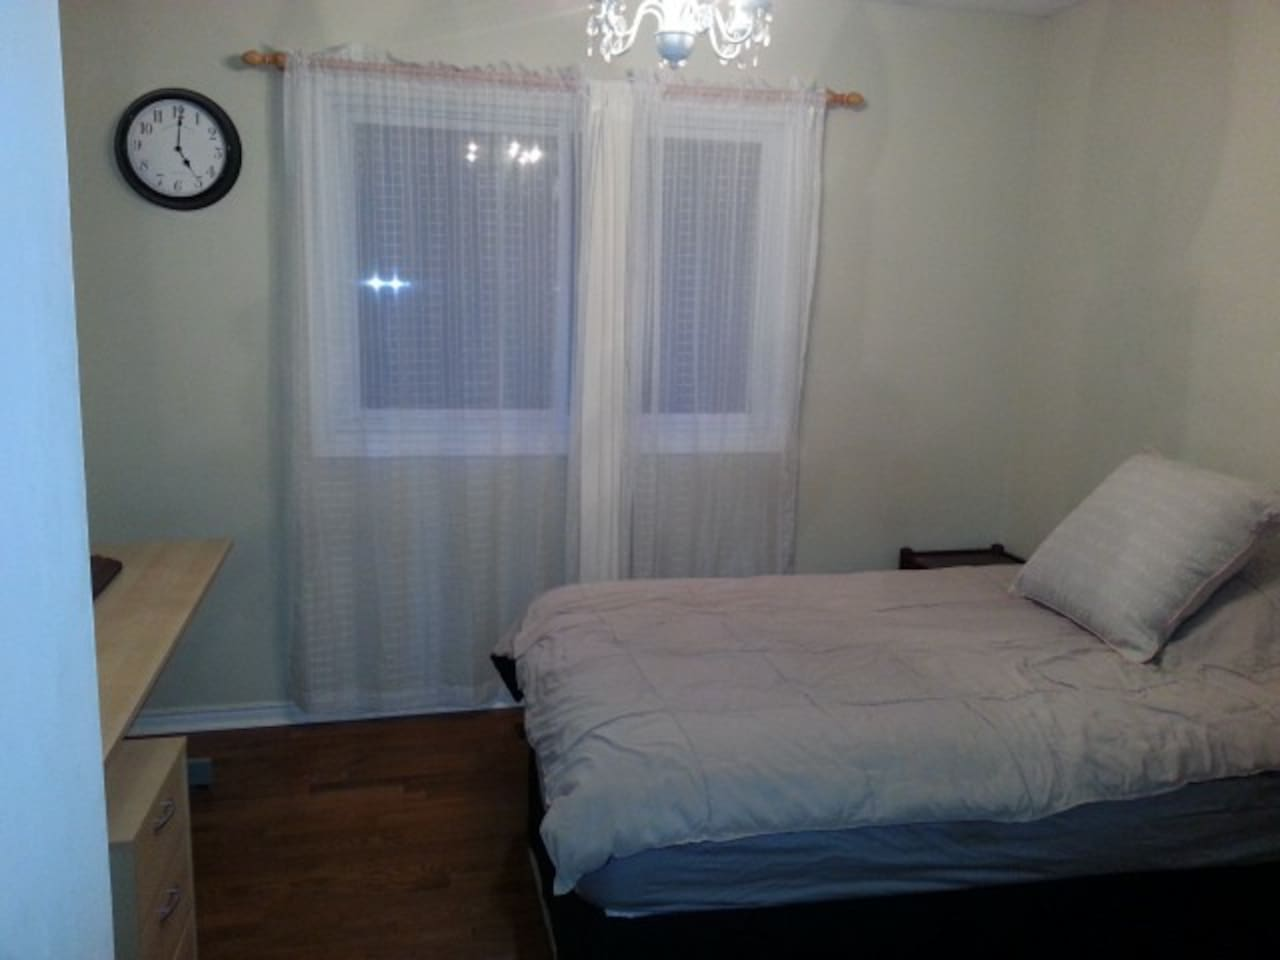 Here's the bedroom with a west facing window with a view of the garden.